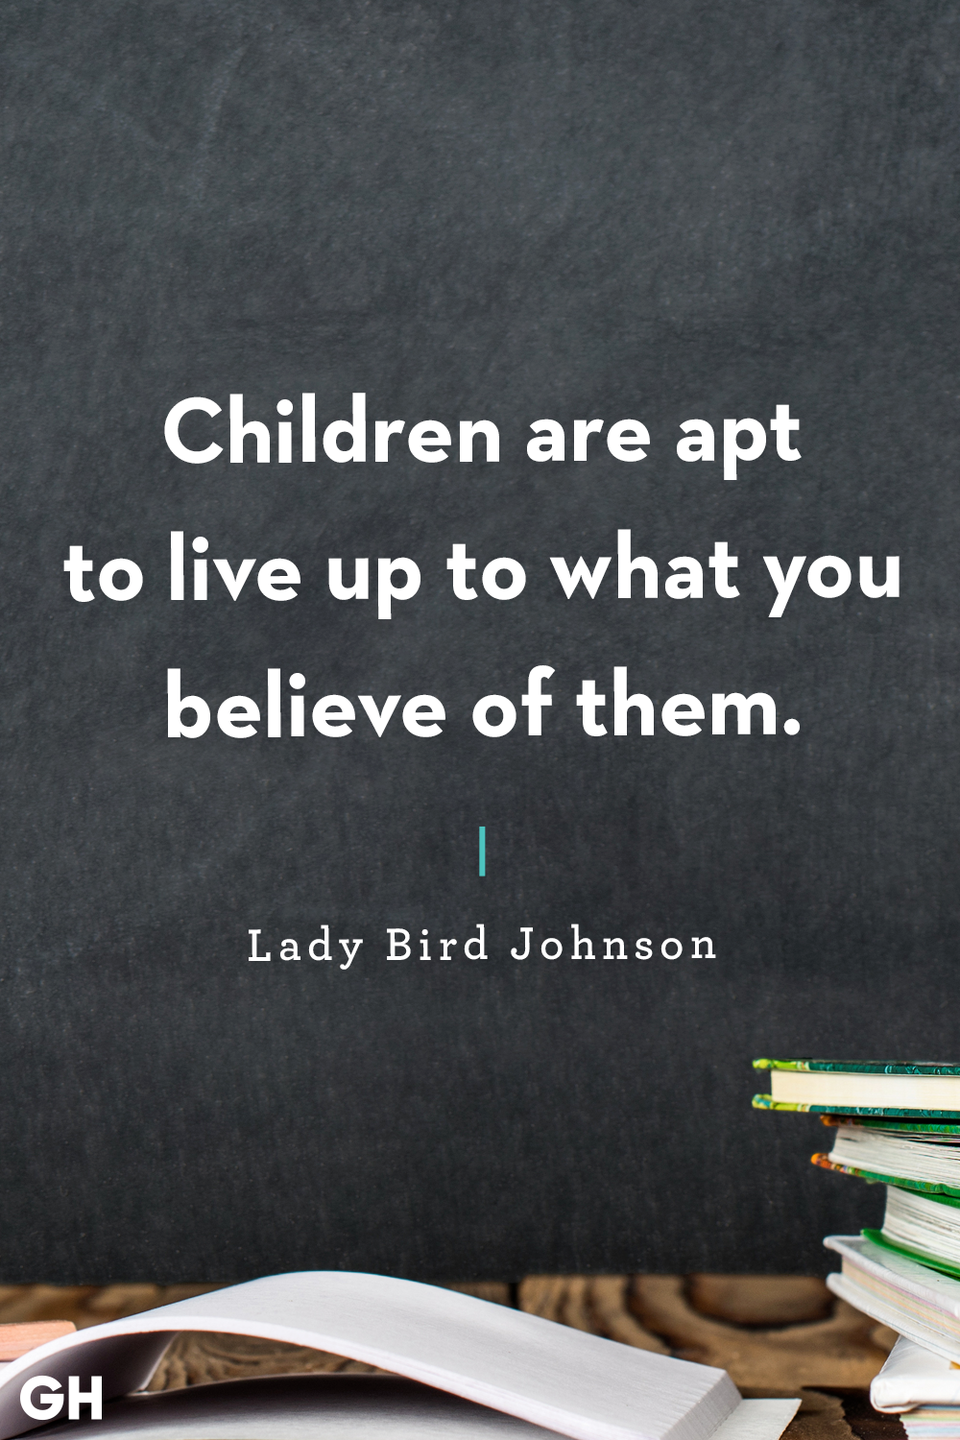 <p>Children are apt to live up to what you believe of them.</p>